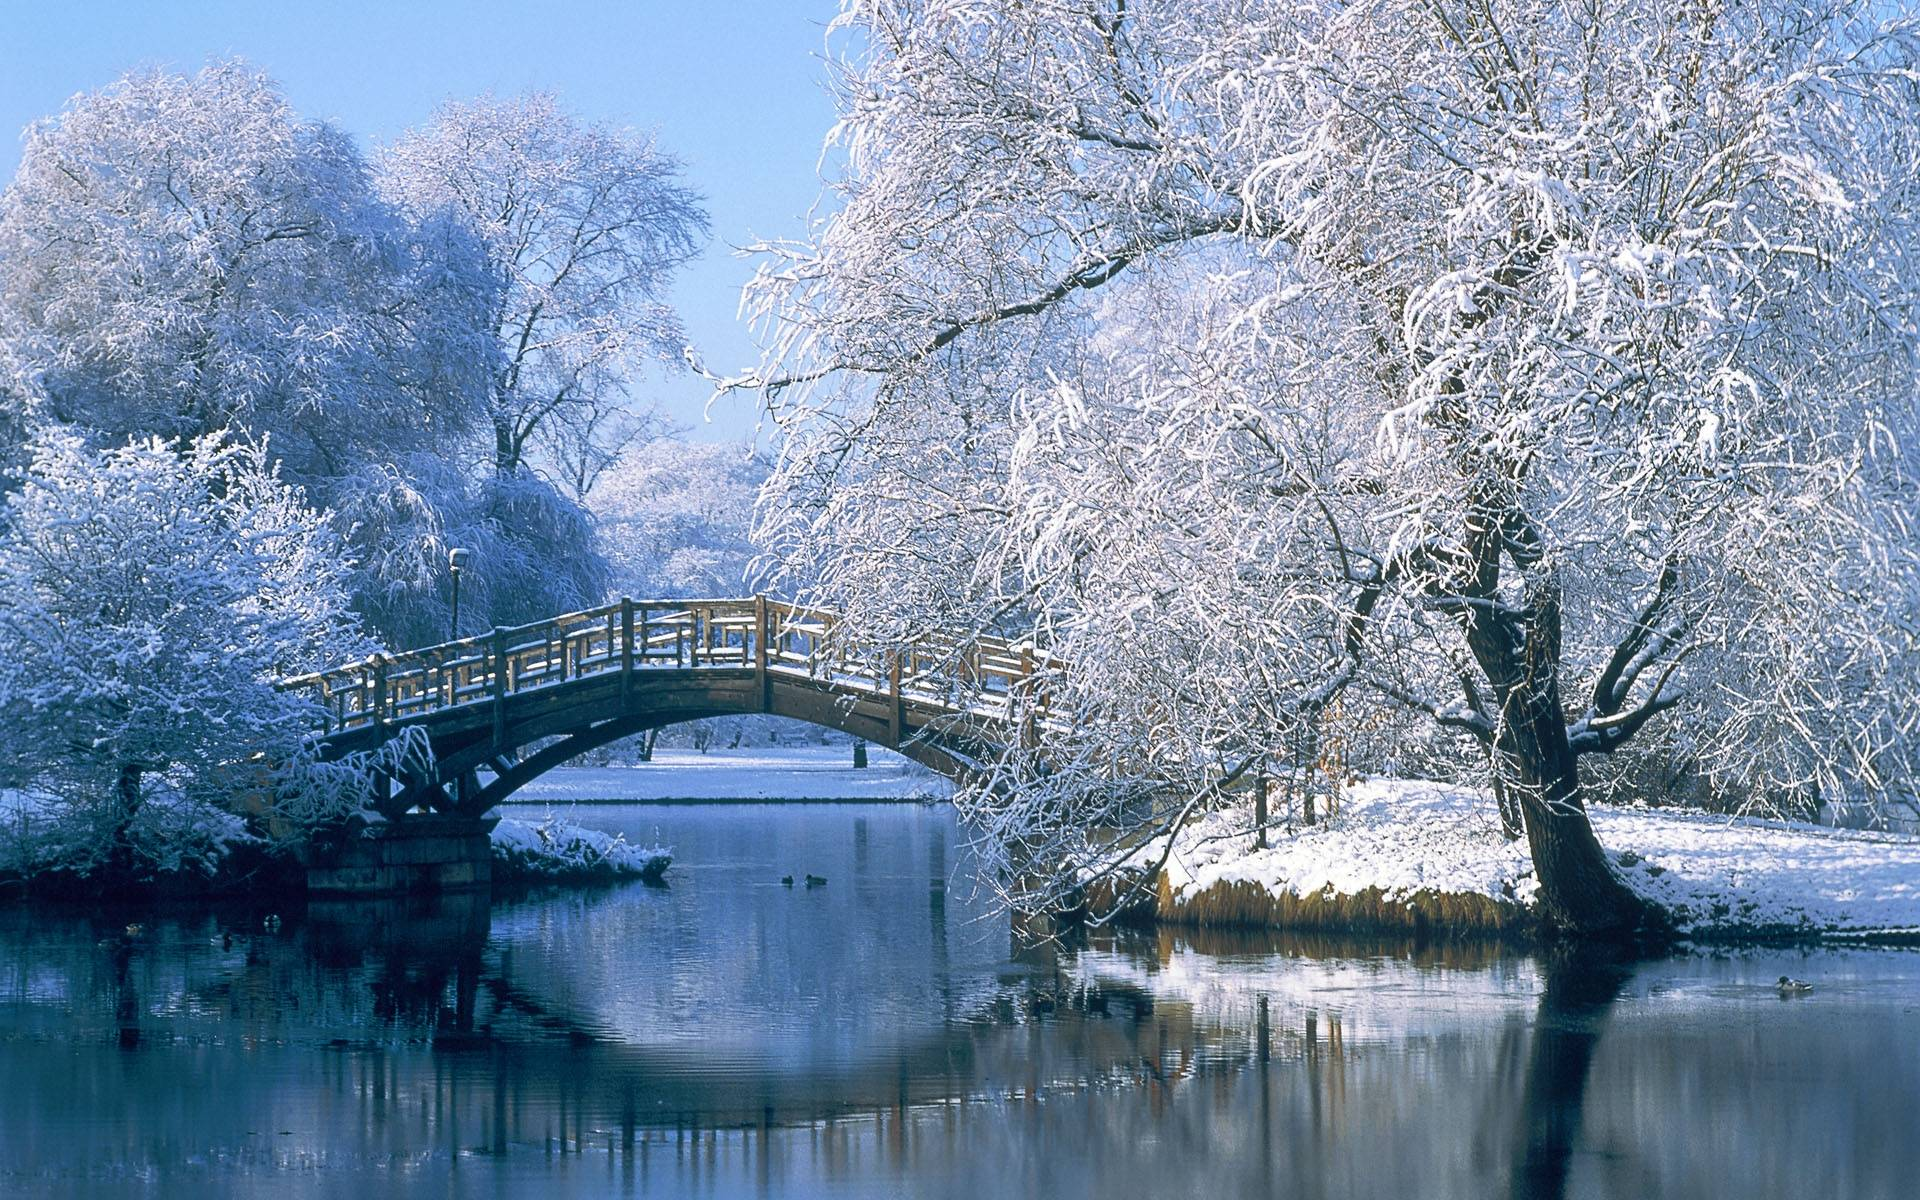 Winter Snow Scenes Wallpaper Free